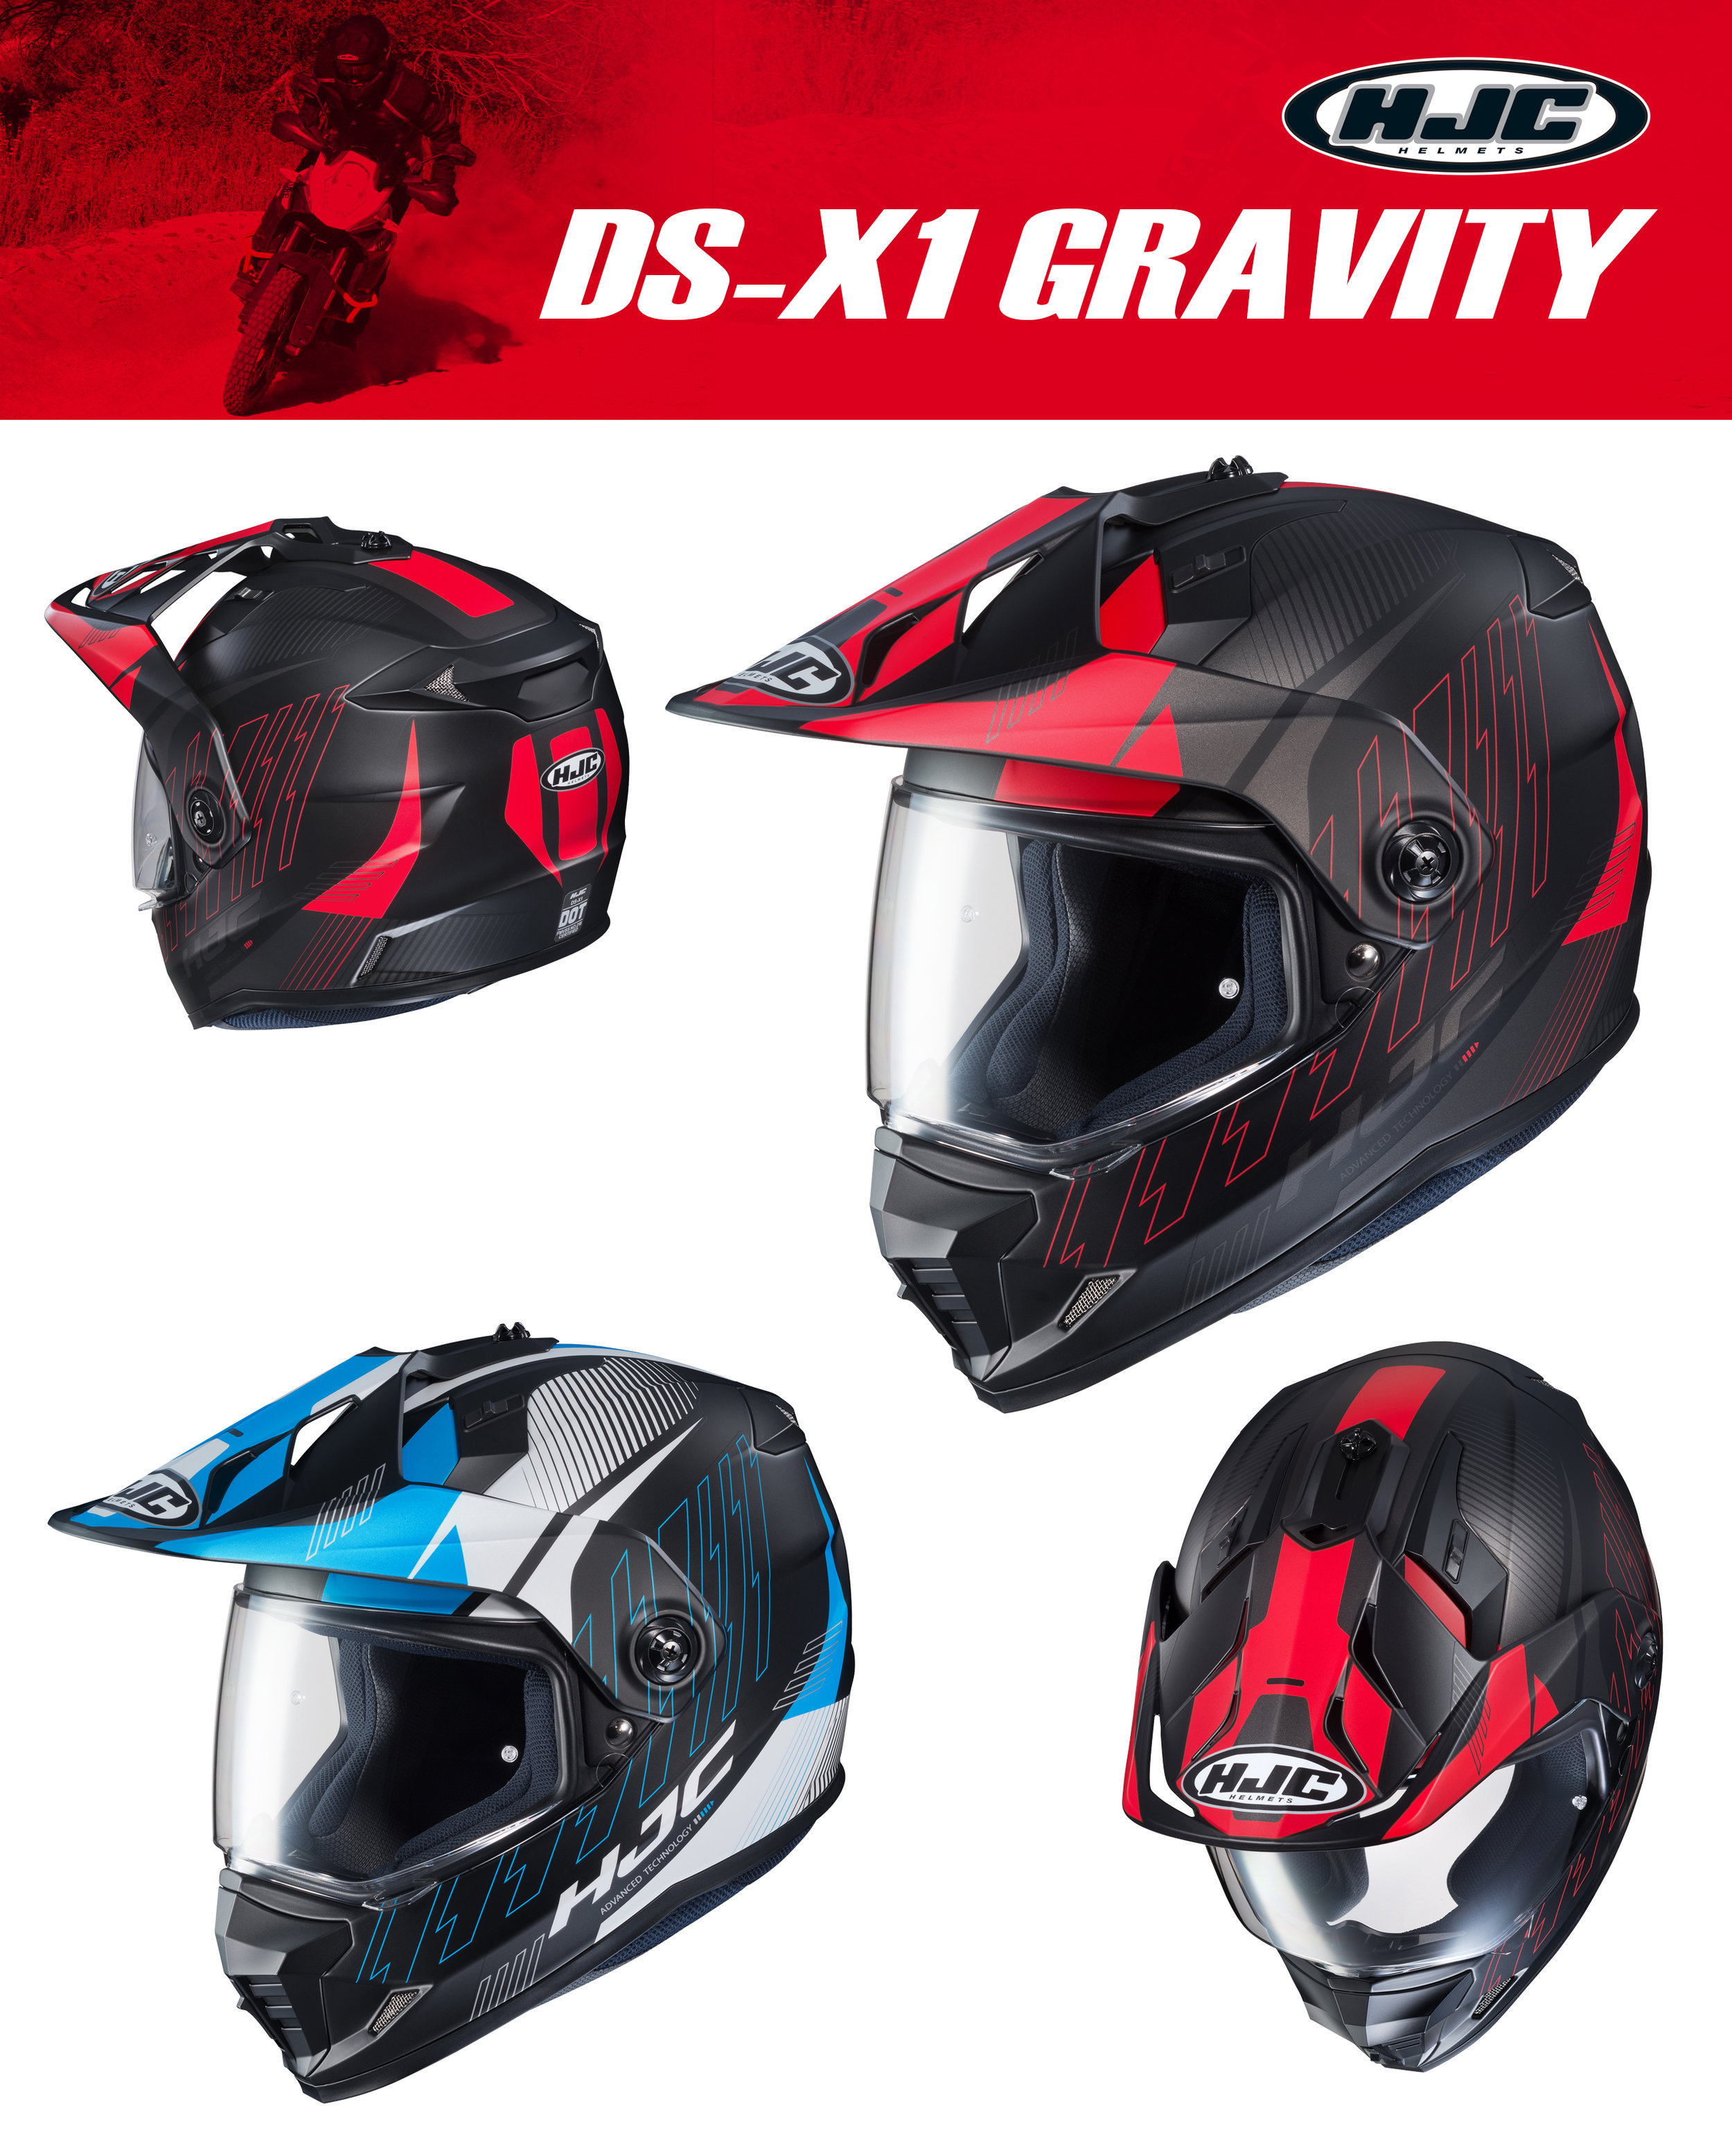 DSX1 Gravity Graphic Post.jpg